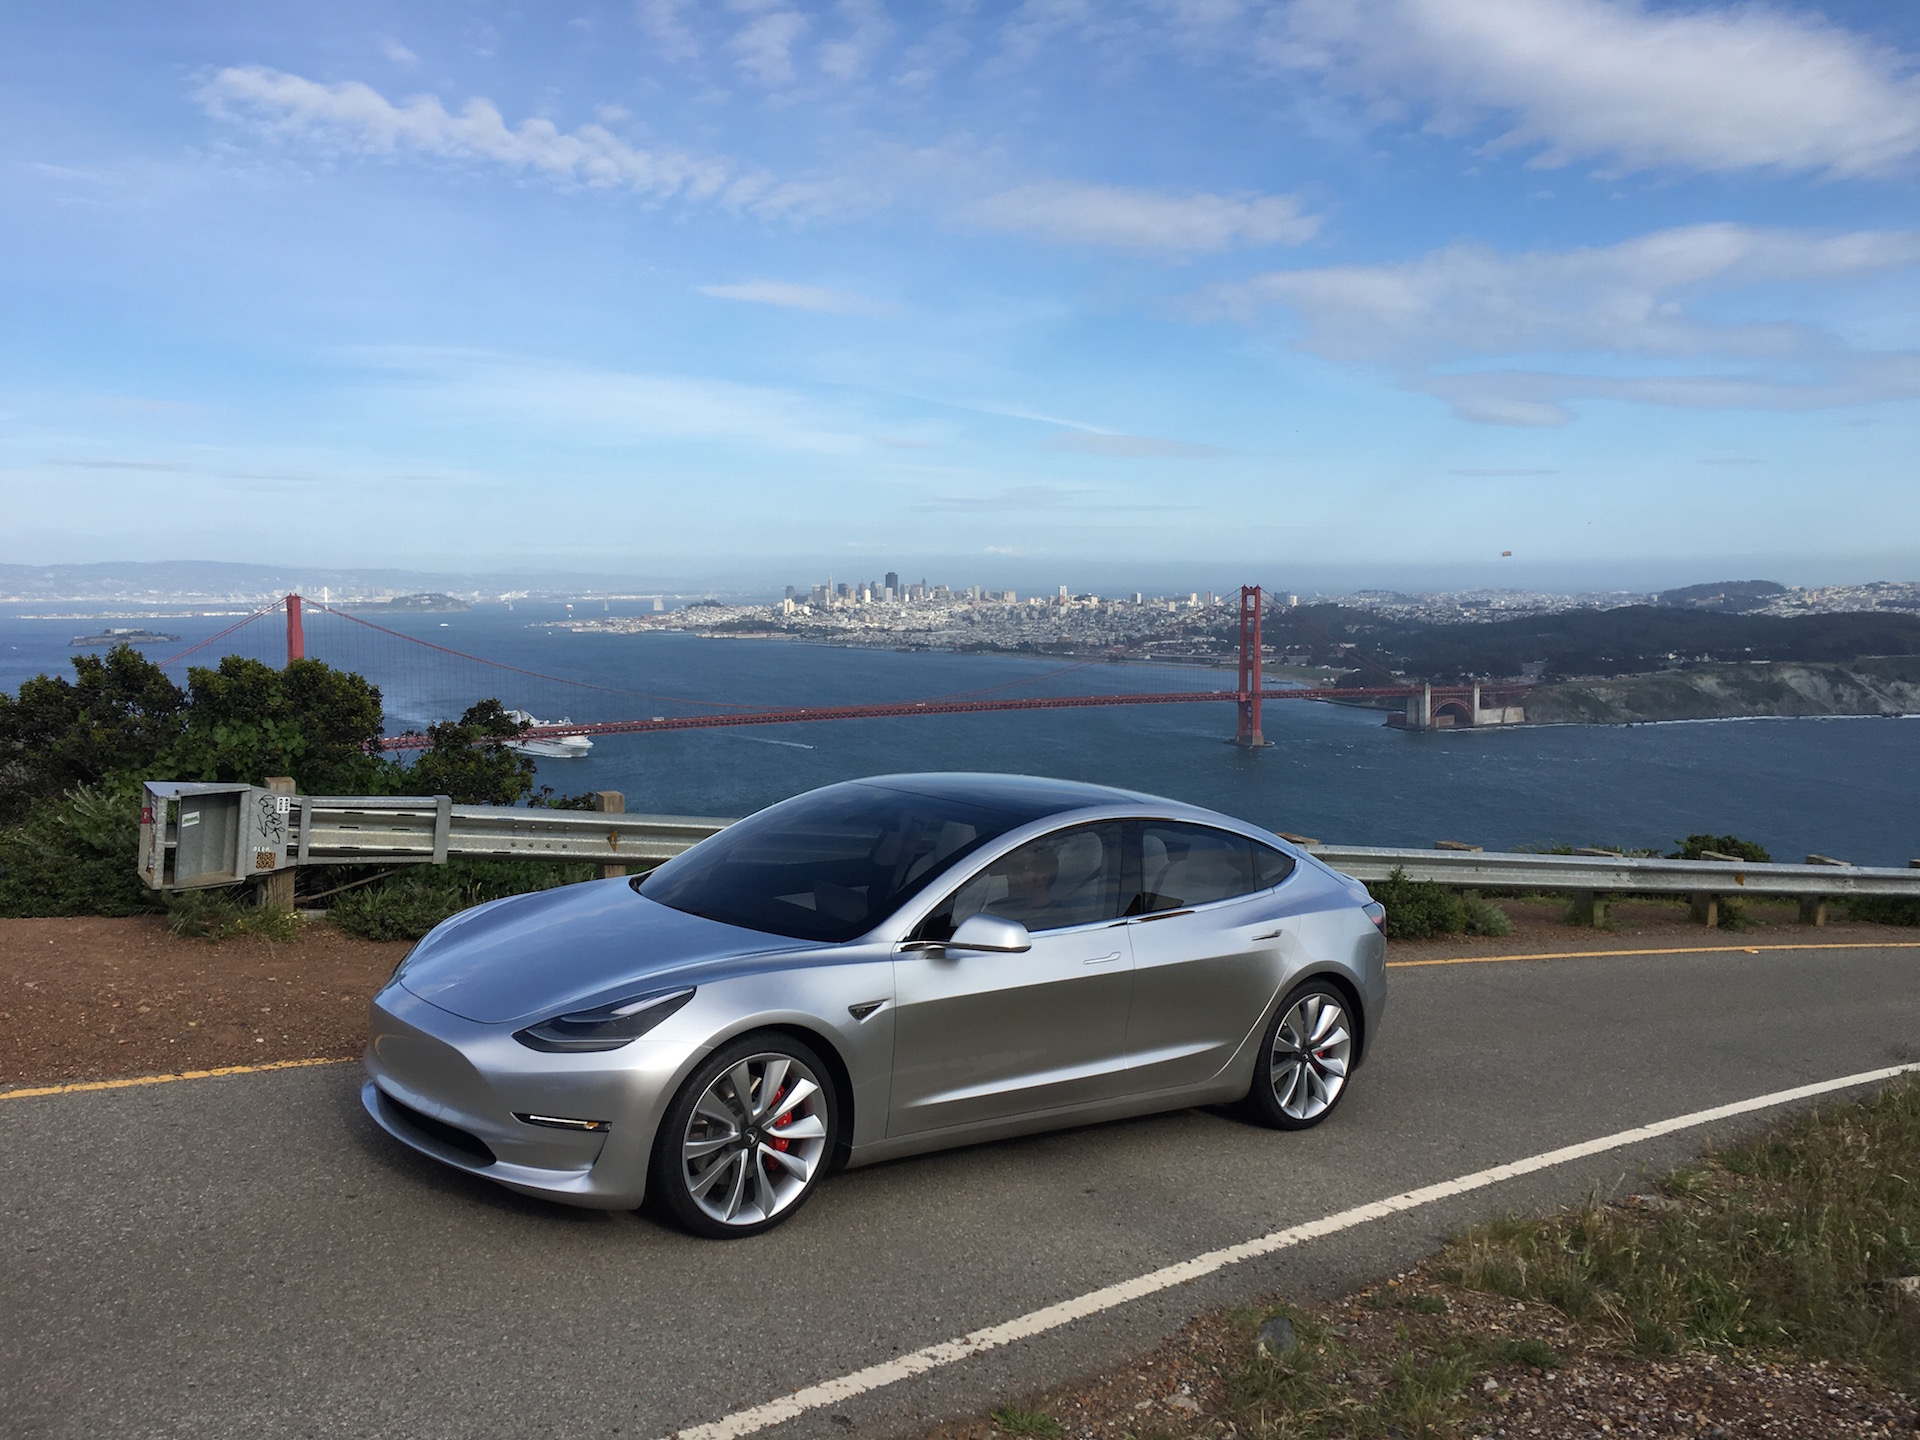 Silver Tesla Model 3 overlooking San Francisco